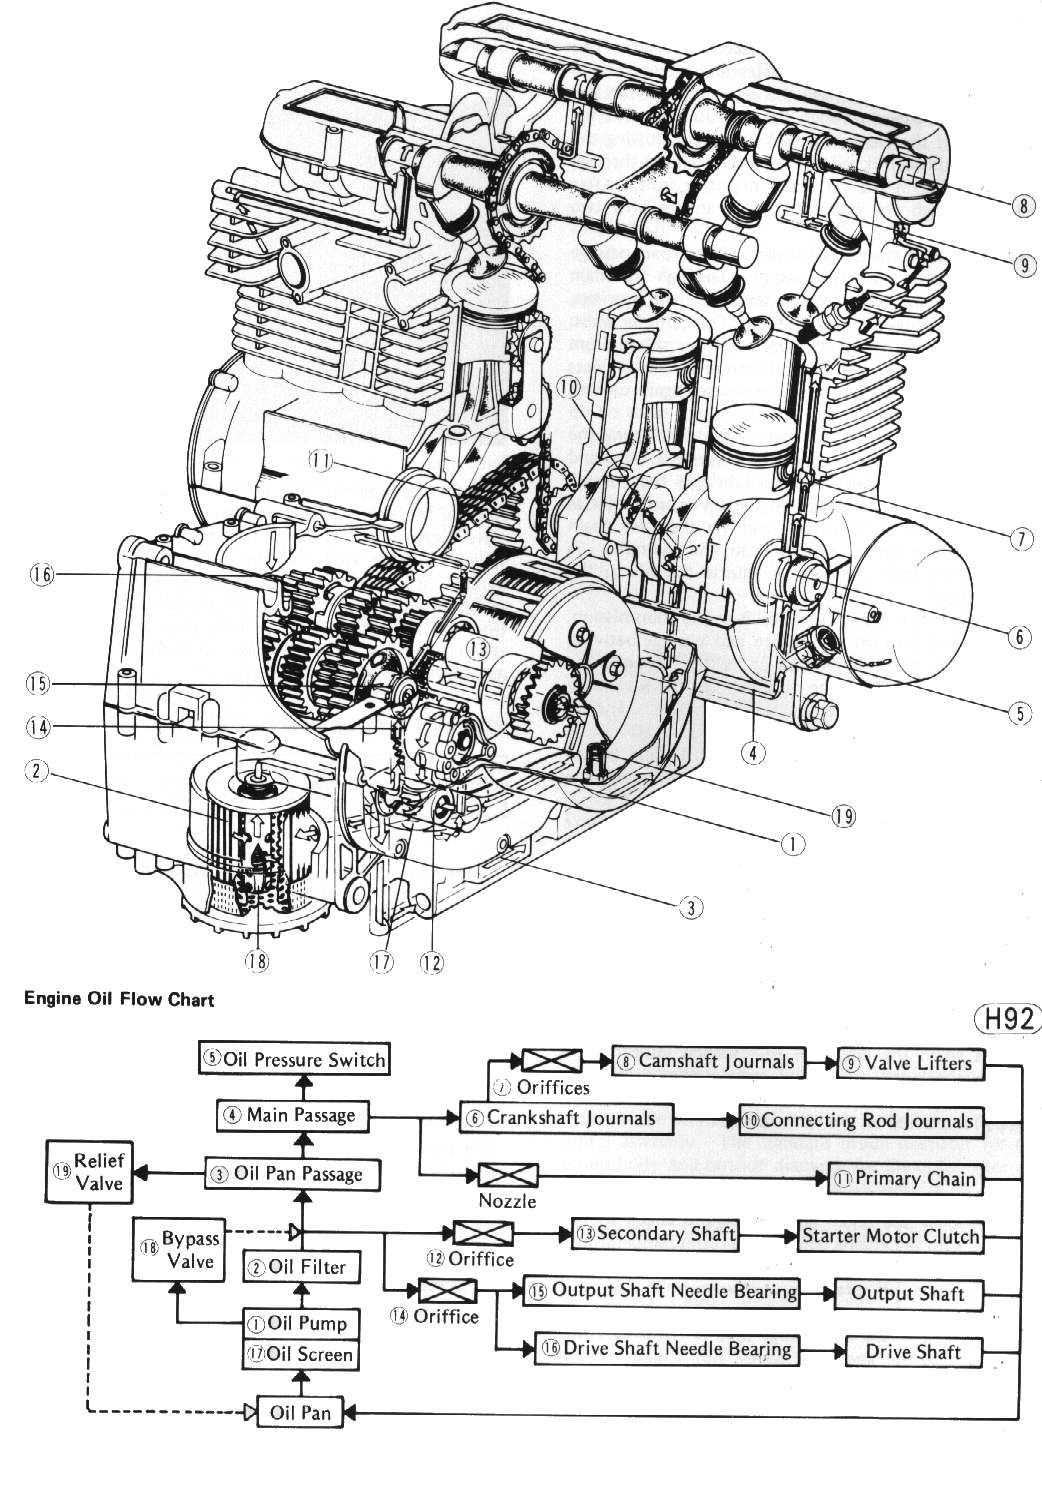 1977 kawasaki kz1000 wiring diagram plant cell with definitions k z 650 battery diagrams